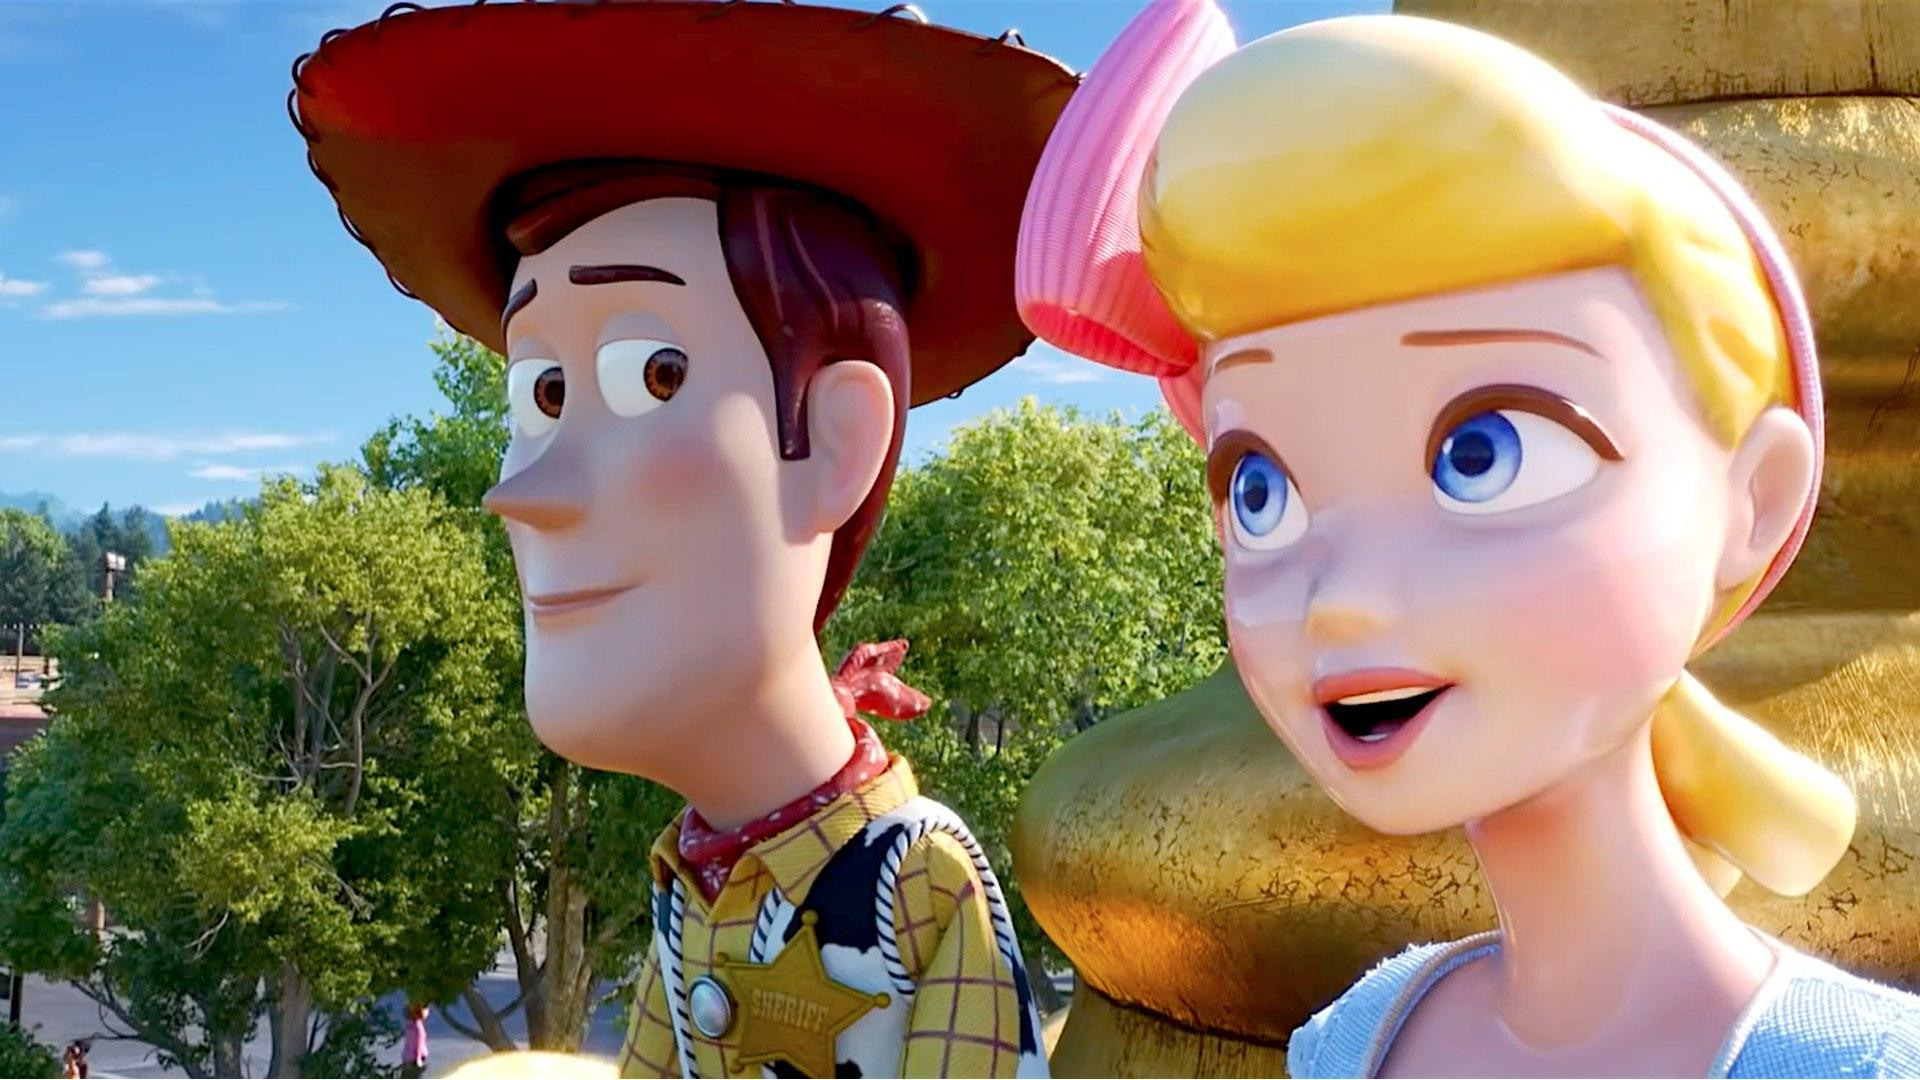 Toy Story 4 - Official Trailer - video dailymotion